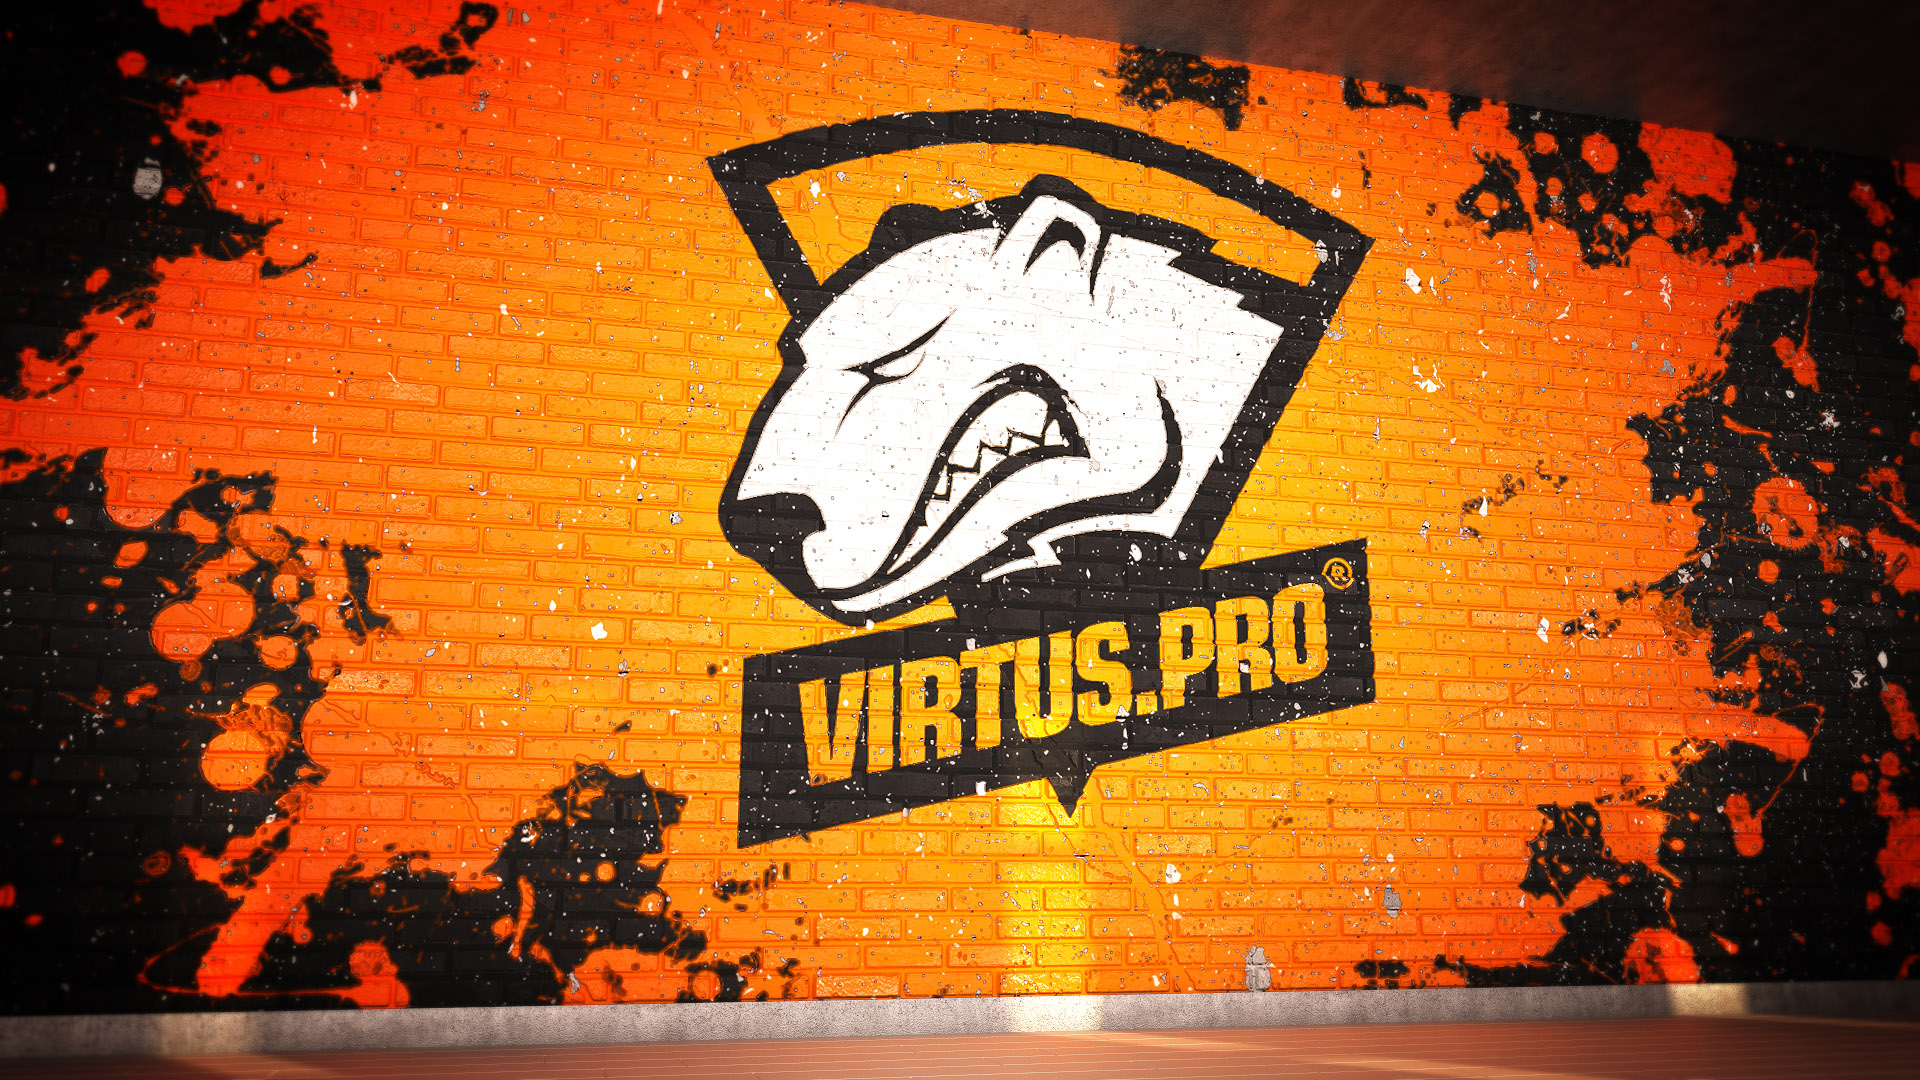 virtus-pro-wallpaper.jpg